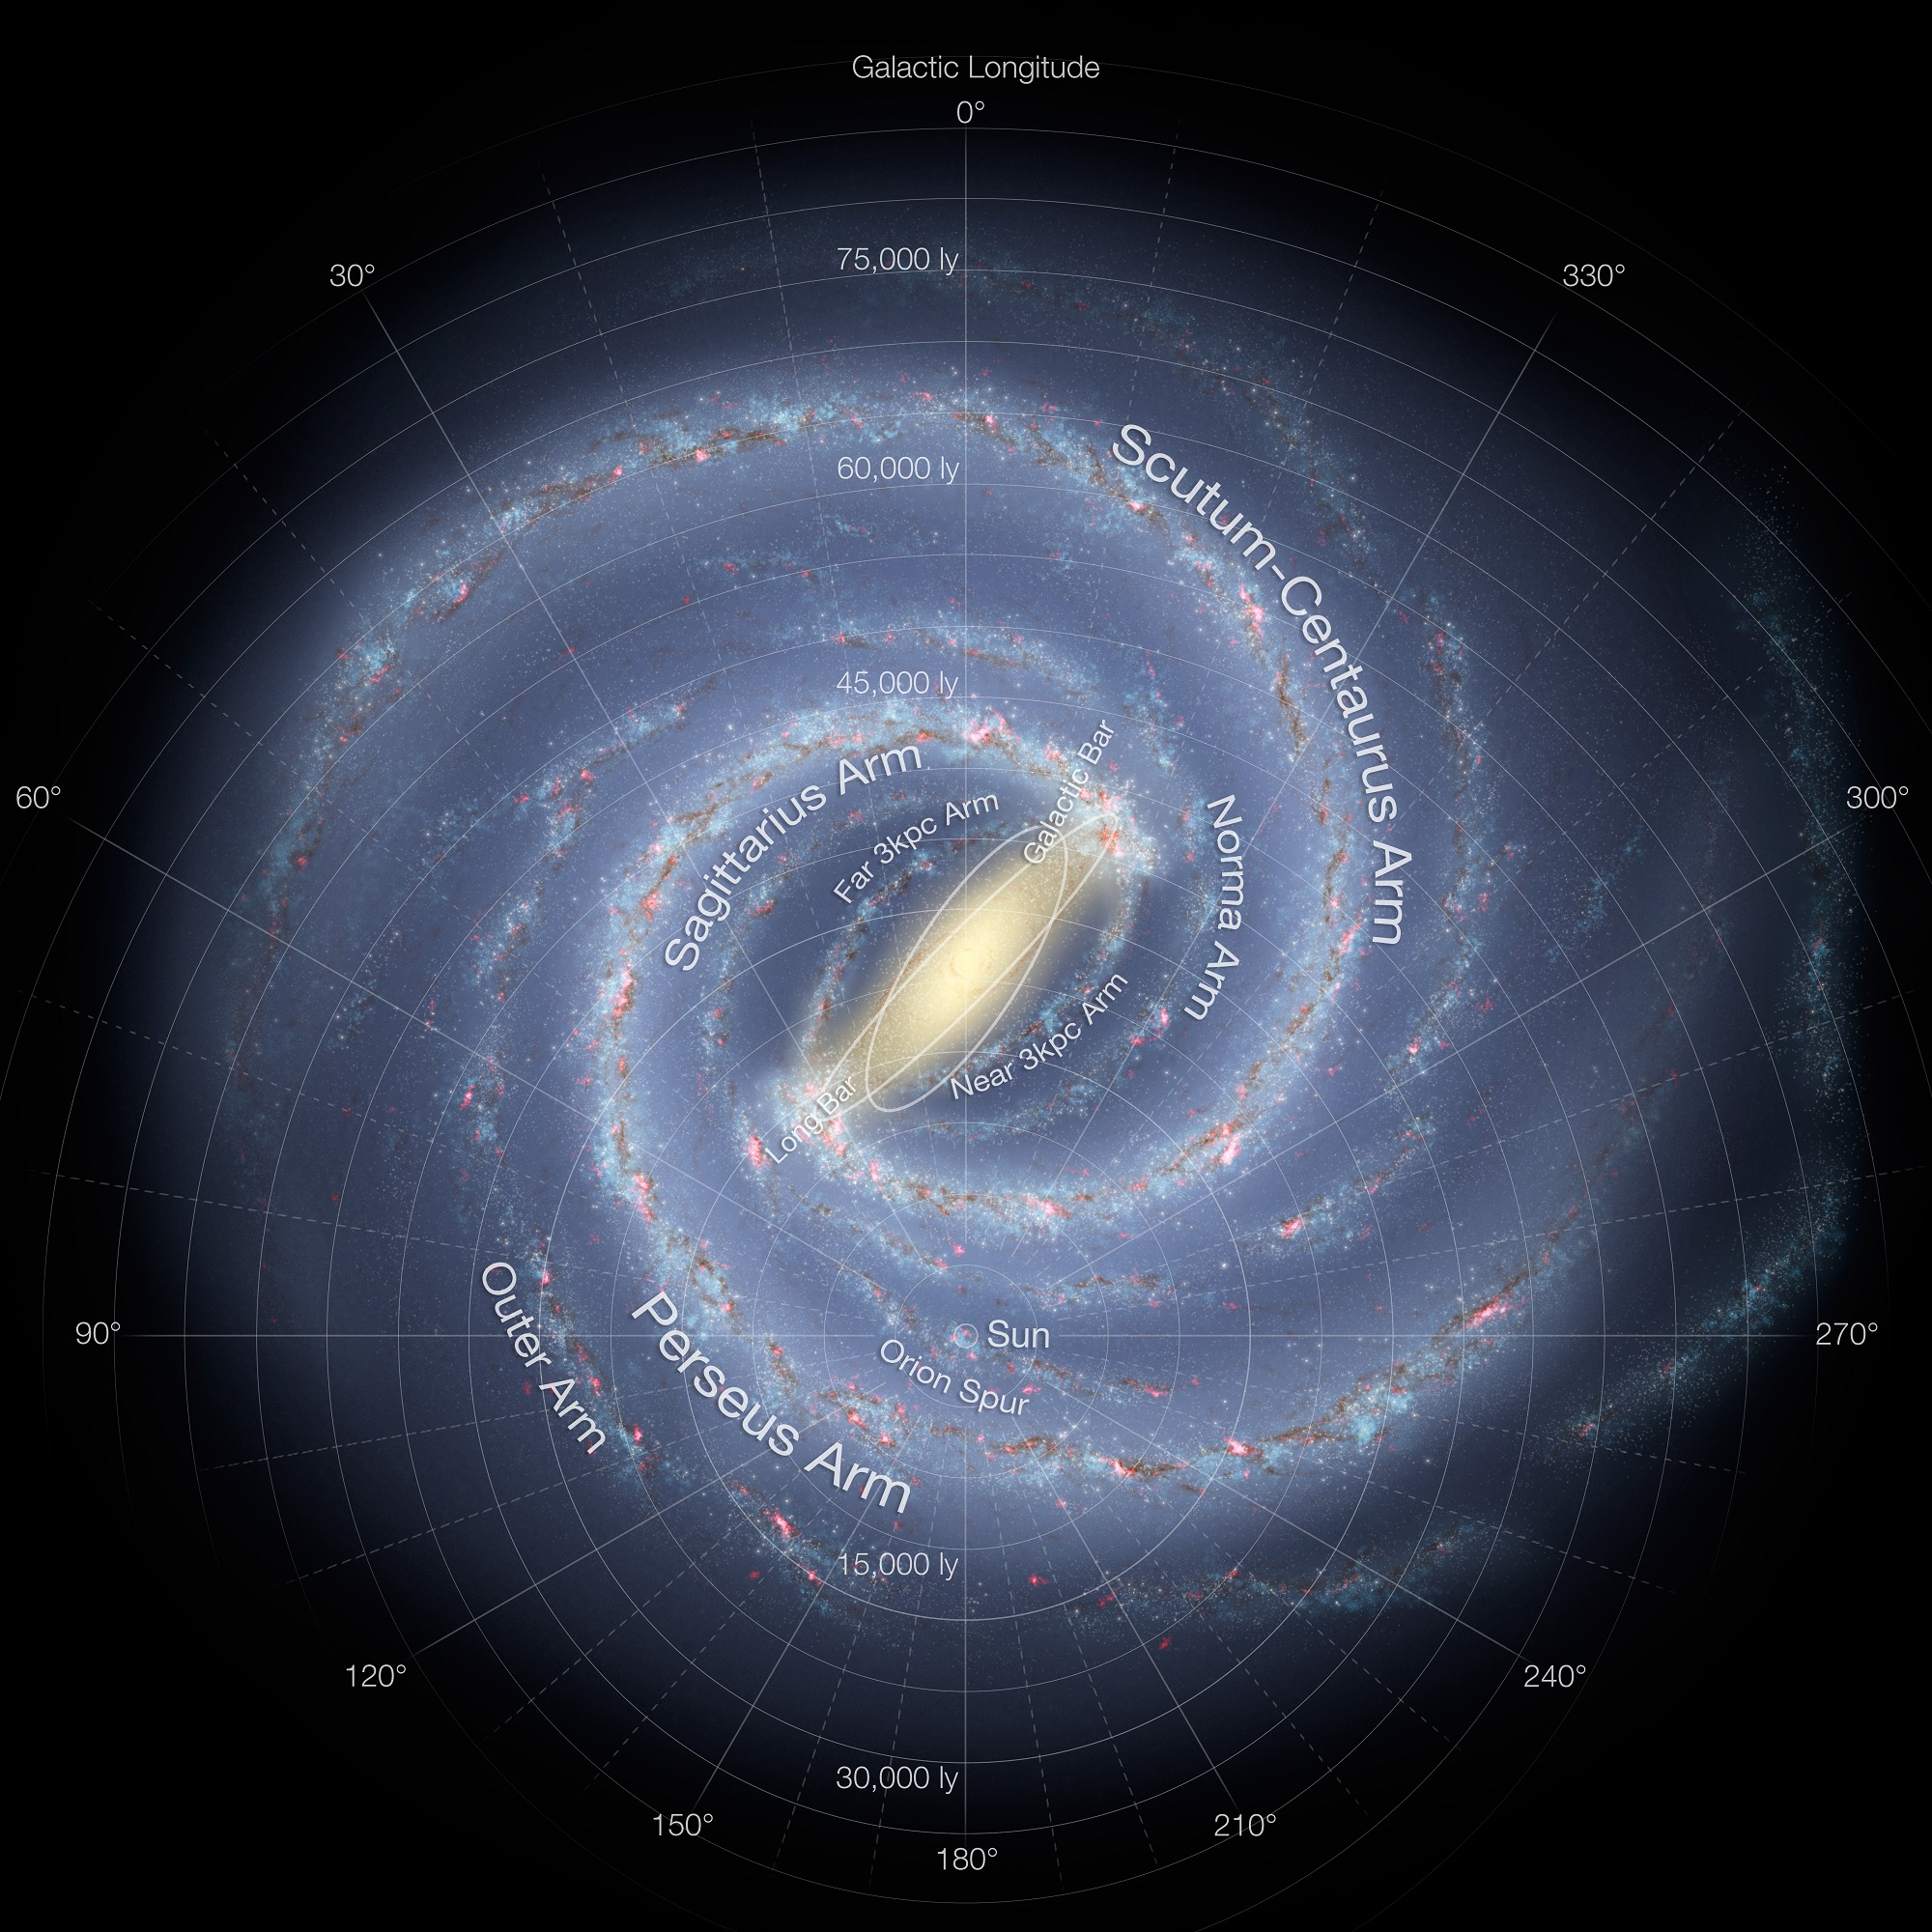 Artist's conception of the spiral structure of the Milky Way with two major stellar arms and a bar. - Image Credit: NASA/JPL-Caltech/ESO/R. Hurt